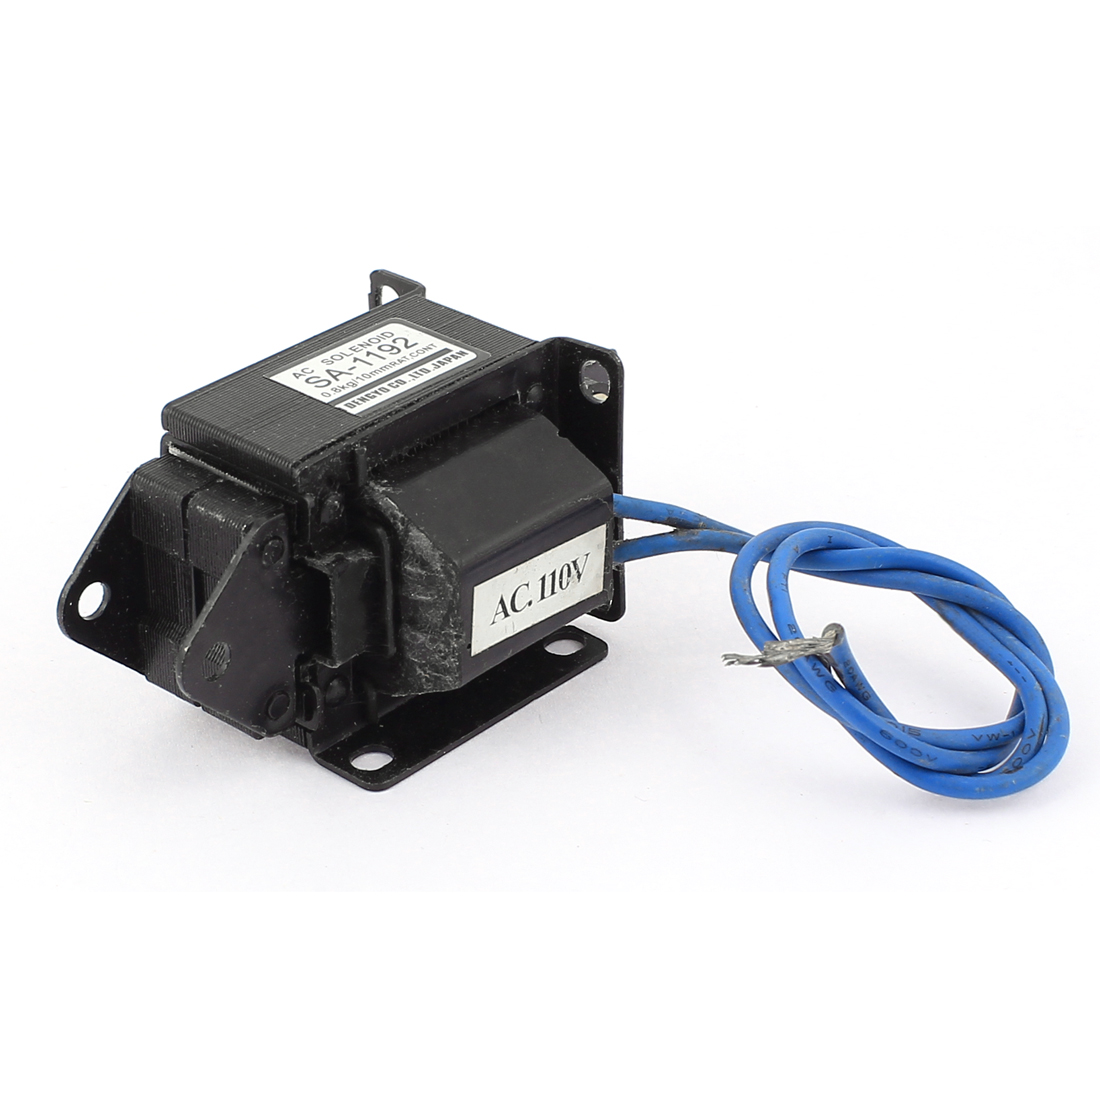 AC 110V 10mm 0.8kg Push Pull Type Lifting Magnet Solenoid Electromagnet Actuator